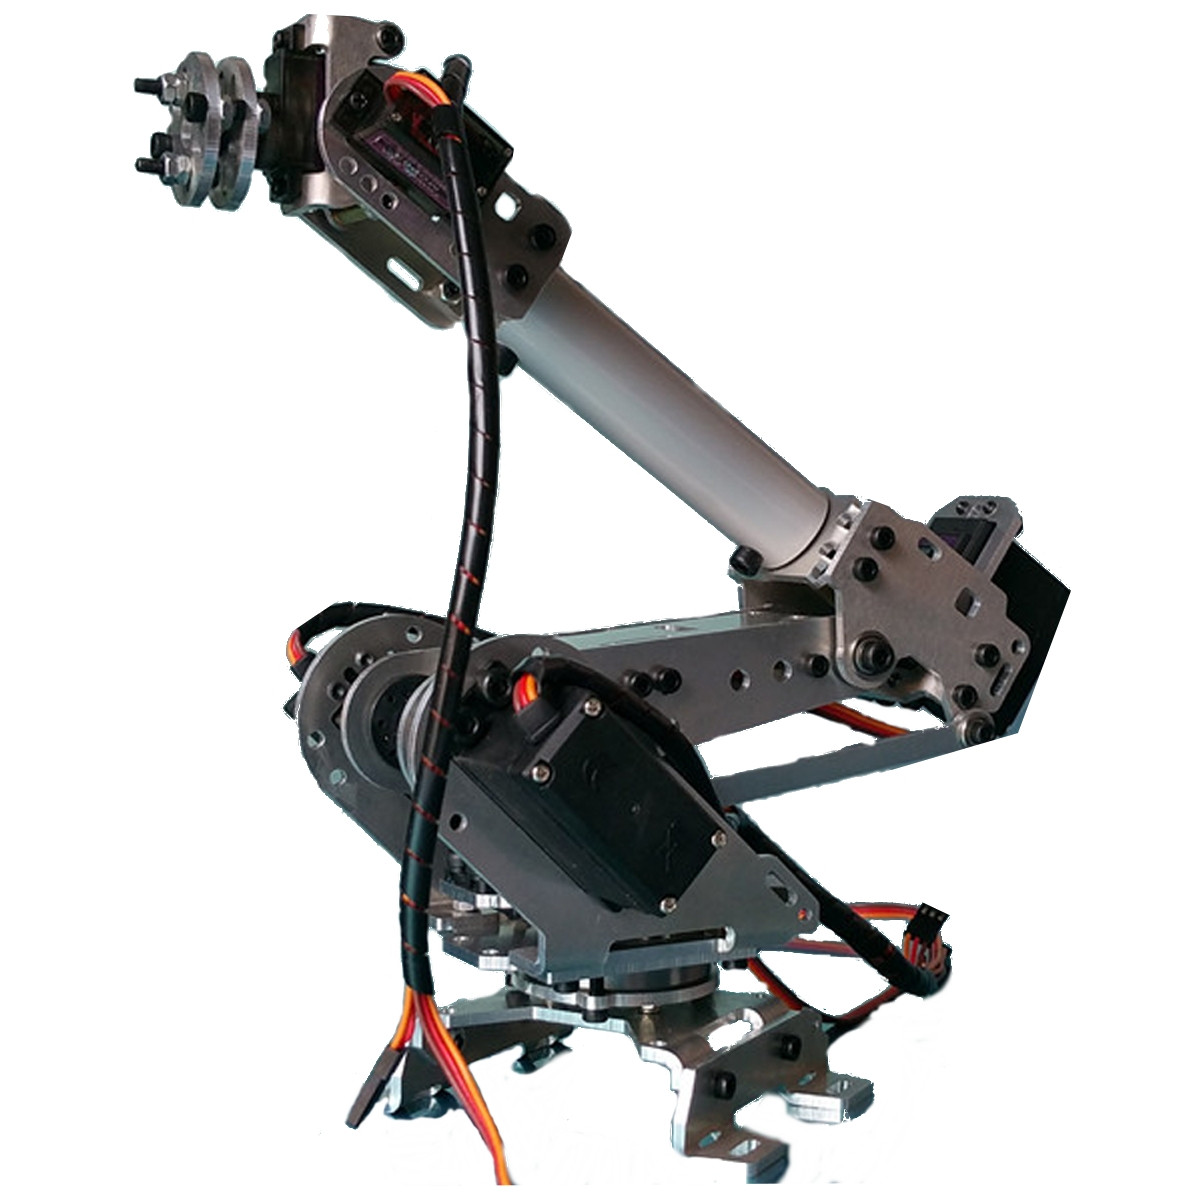 Best ideas about DIY Robot Arm . Save or Pin 6DOF Mechanical Robot Arm Claw With Servos For Robotics Now.